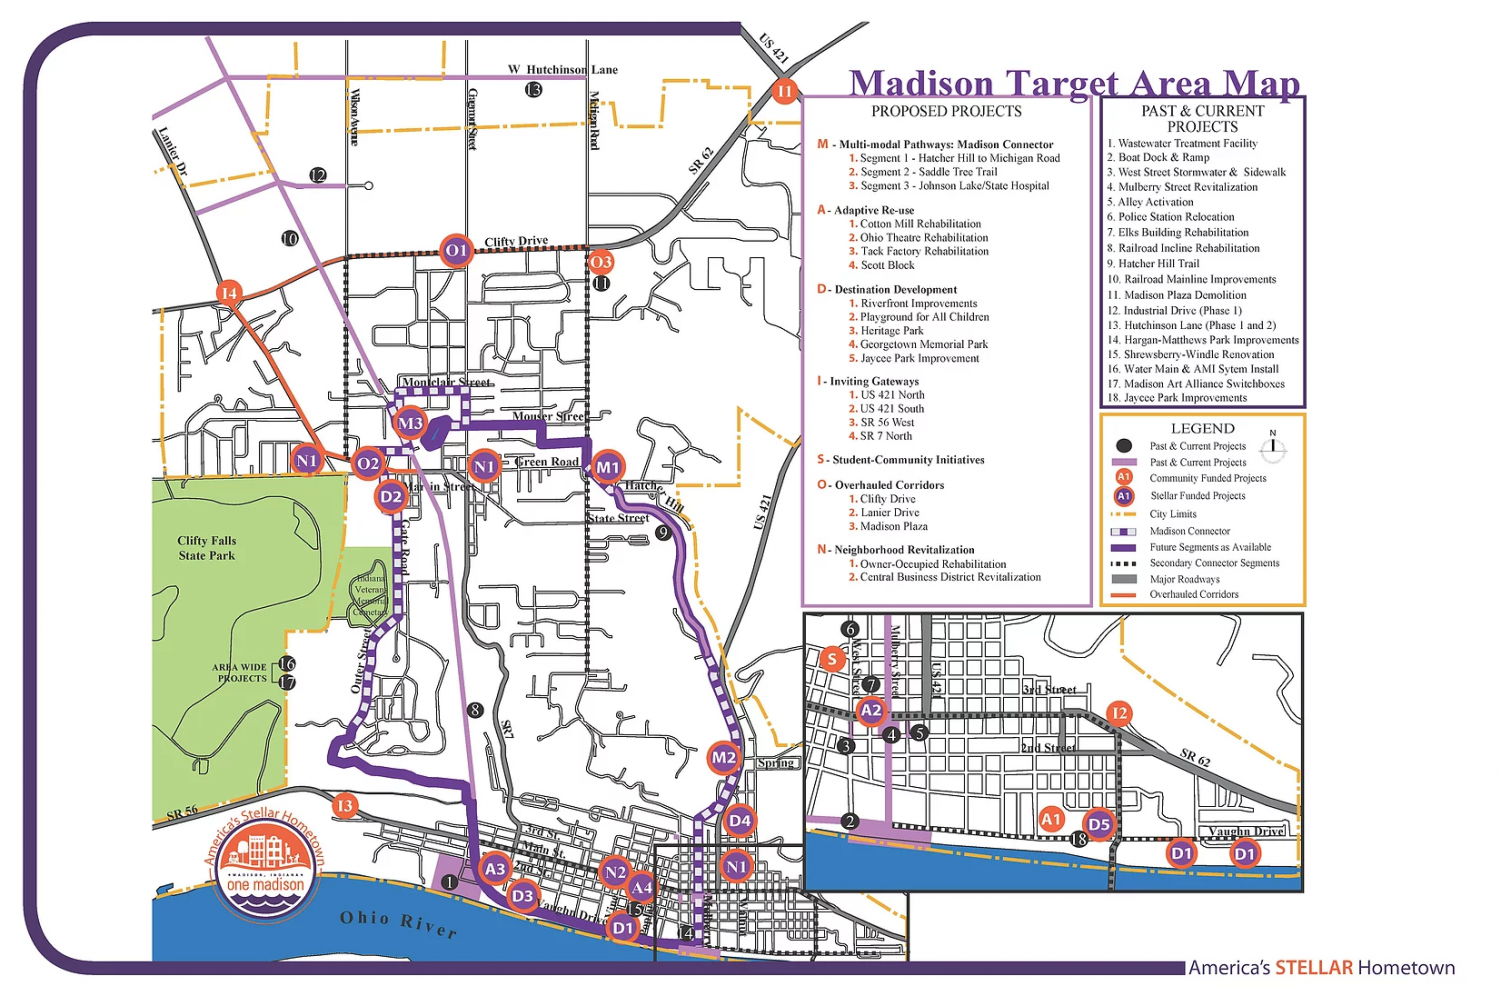 An overview of the Stellar Madison Project plan.